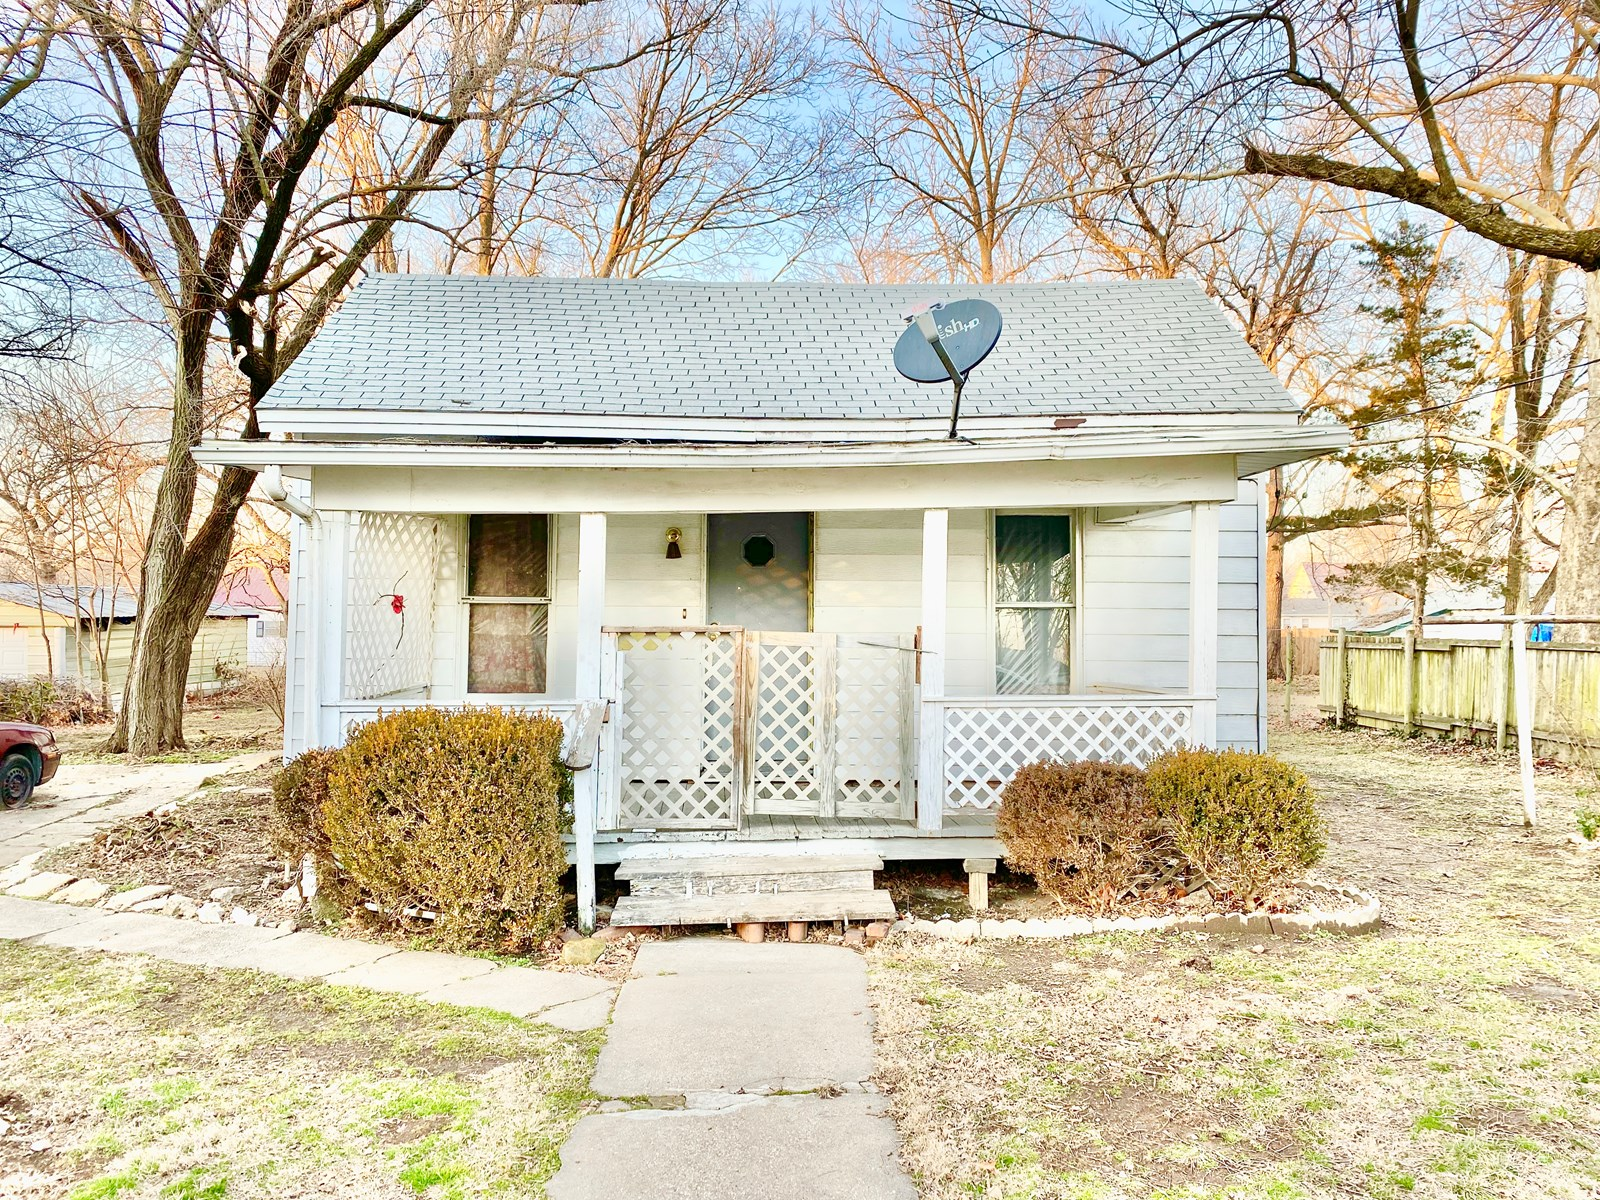 Investment Property in Nevada Missouri by Claire Silvers